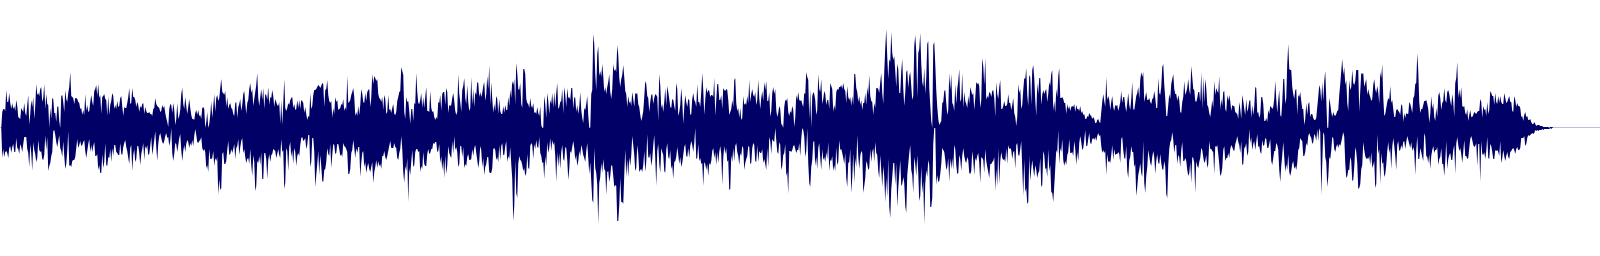 waveform of track #98647